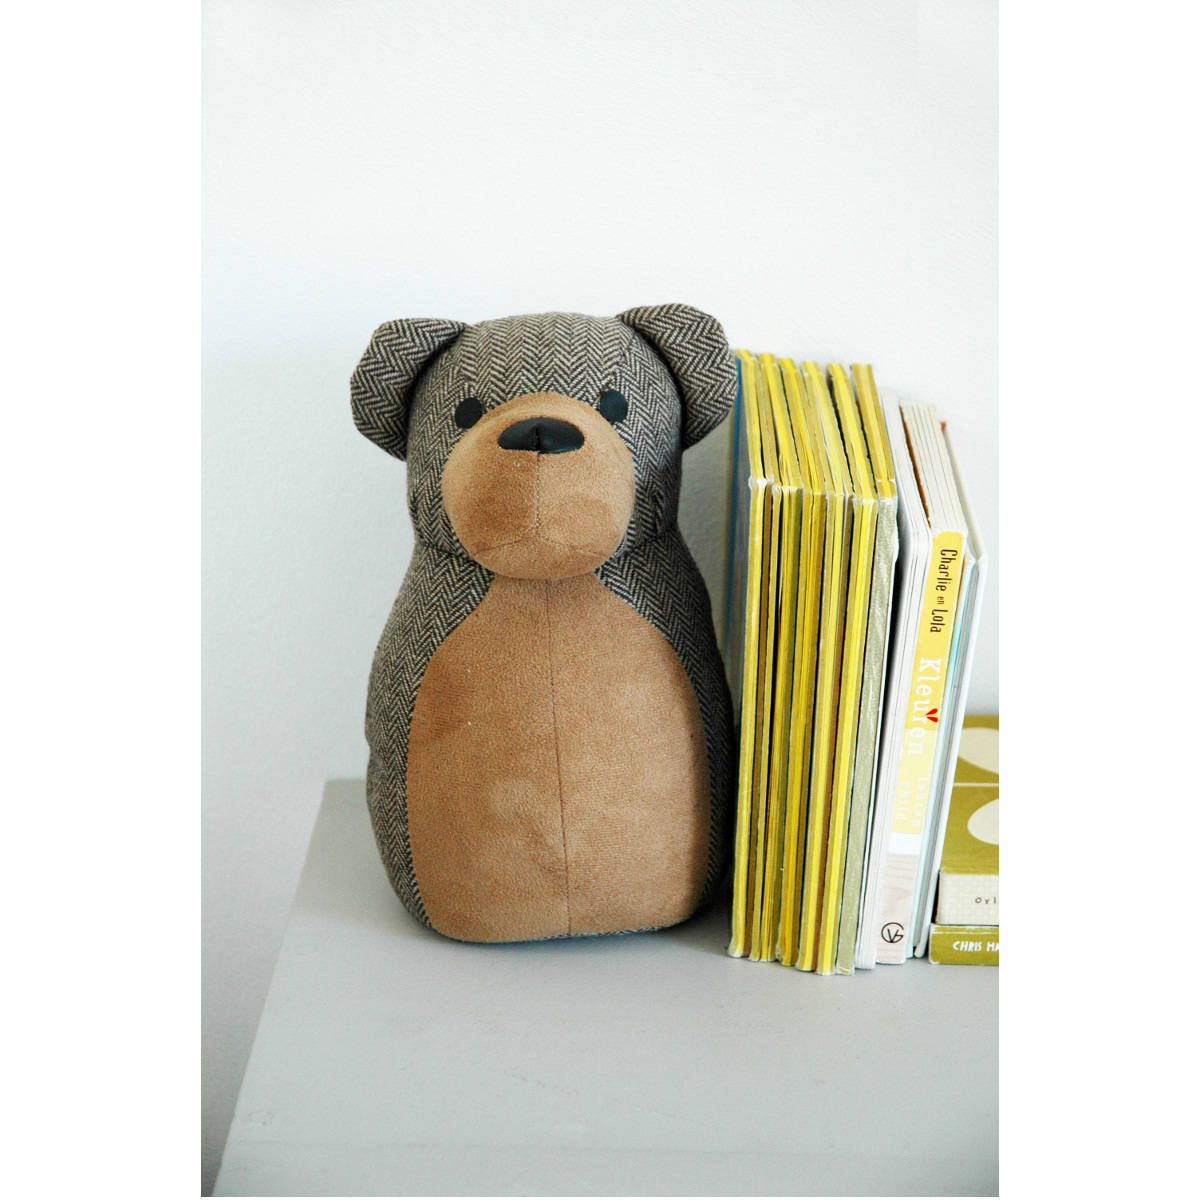 DOORSTOPPER AND BOOKEND ANIMALS